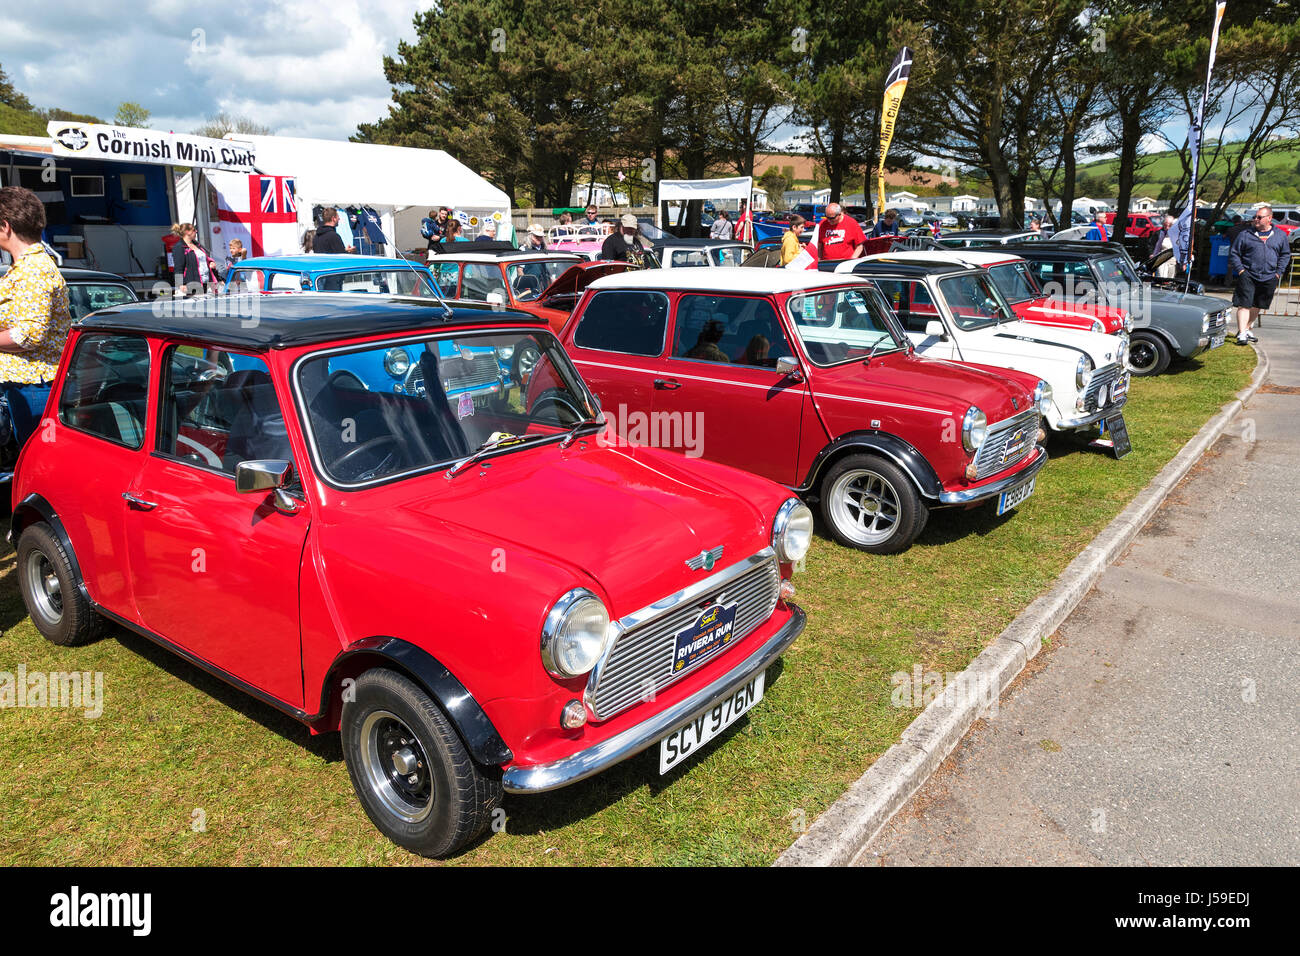 the riviera run for mini cars hosted by the cornish mini club at pentewan sands holiday park in cornwall, england, - Stock Image